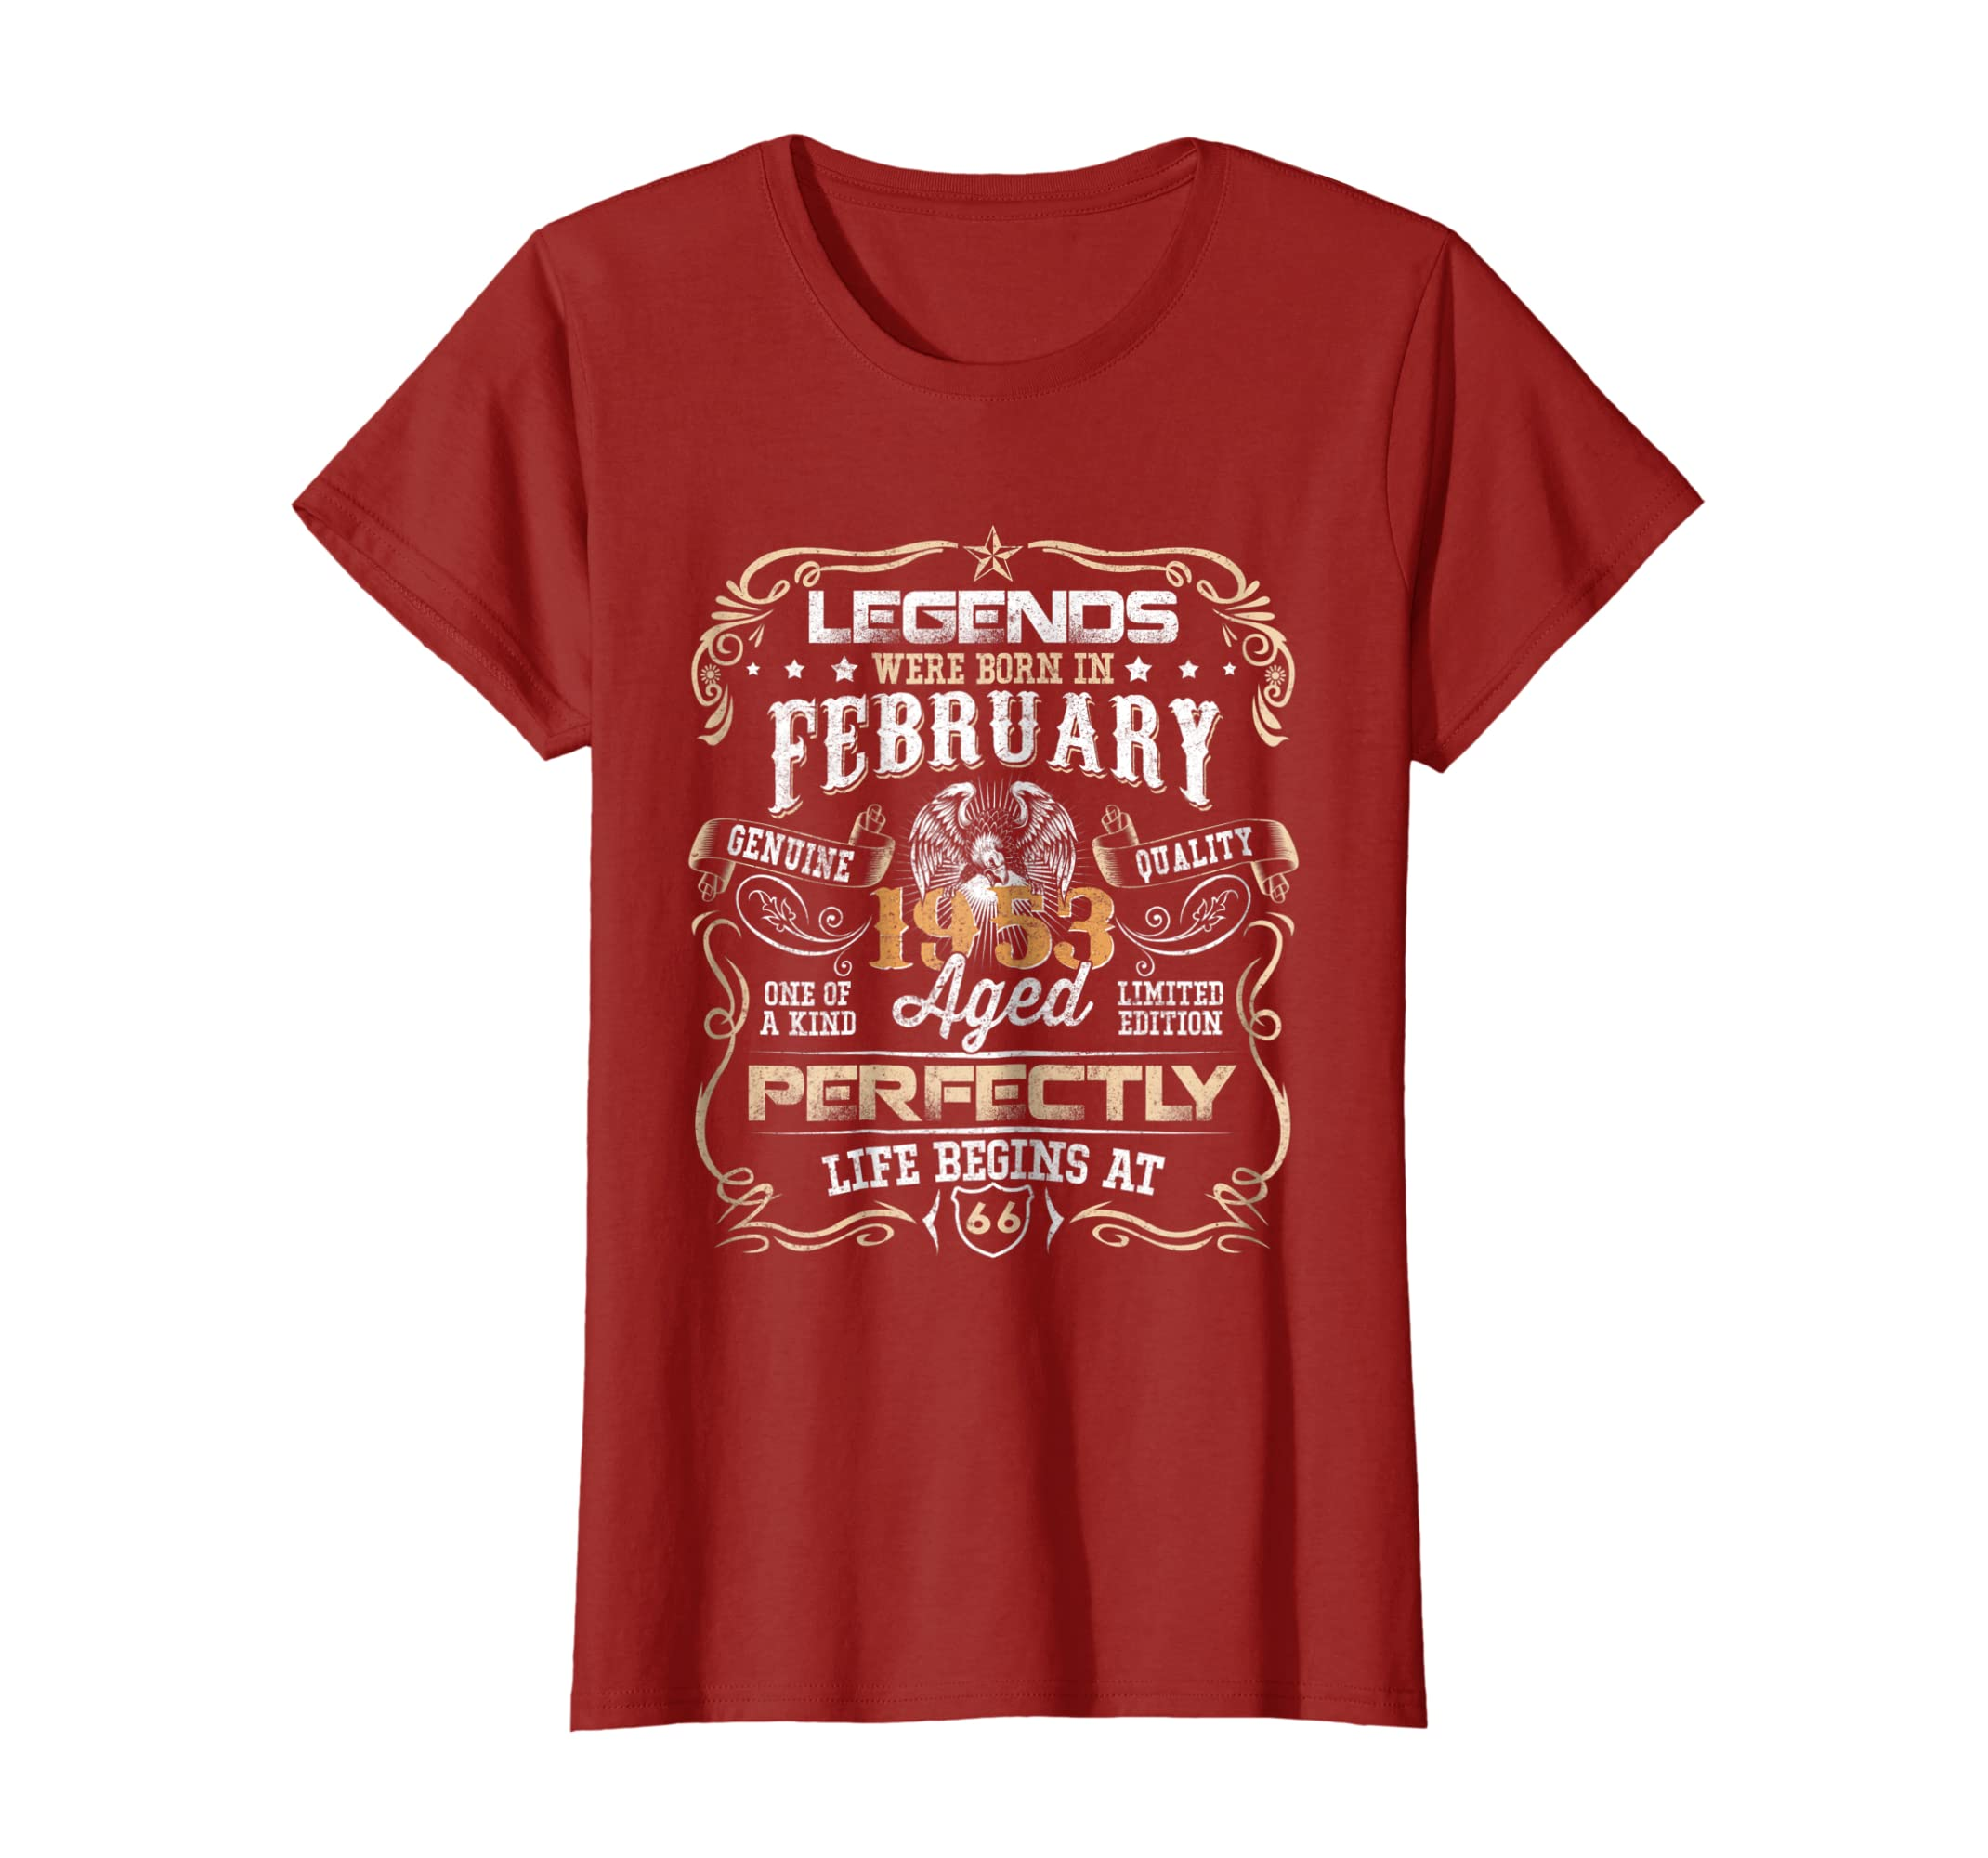 31a0cc1a3 Amazon.com: Legends Born in February 1953 66th Awesome Birthday T-Shirt:  Clothing